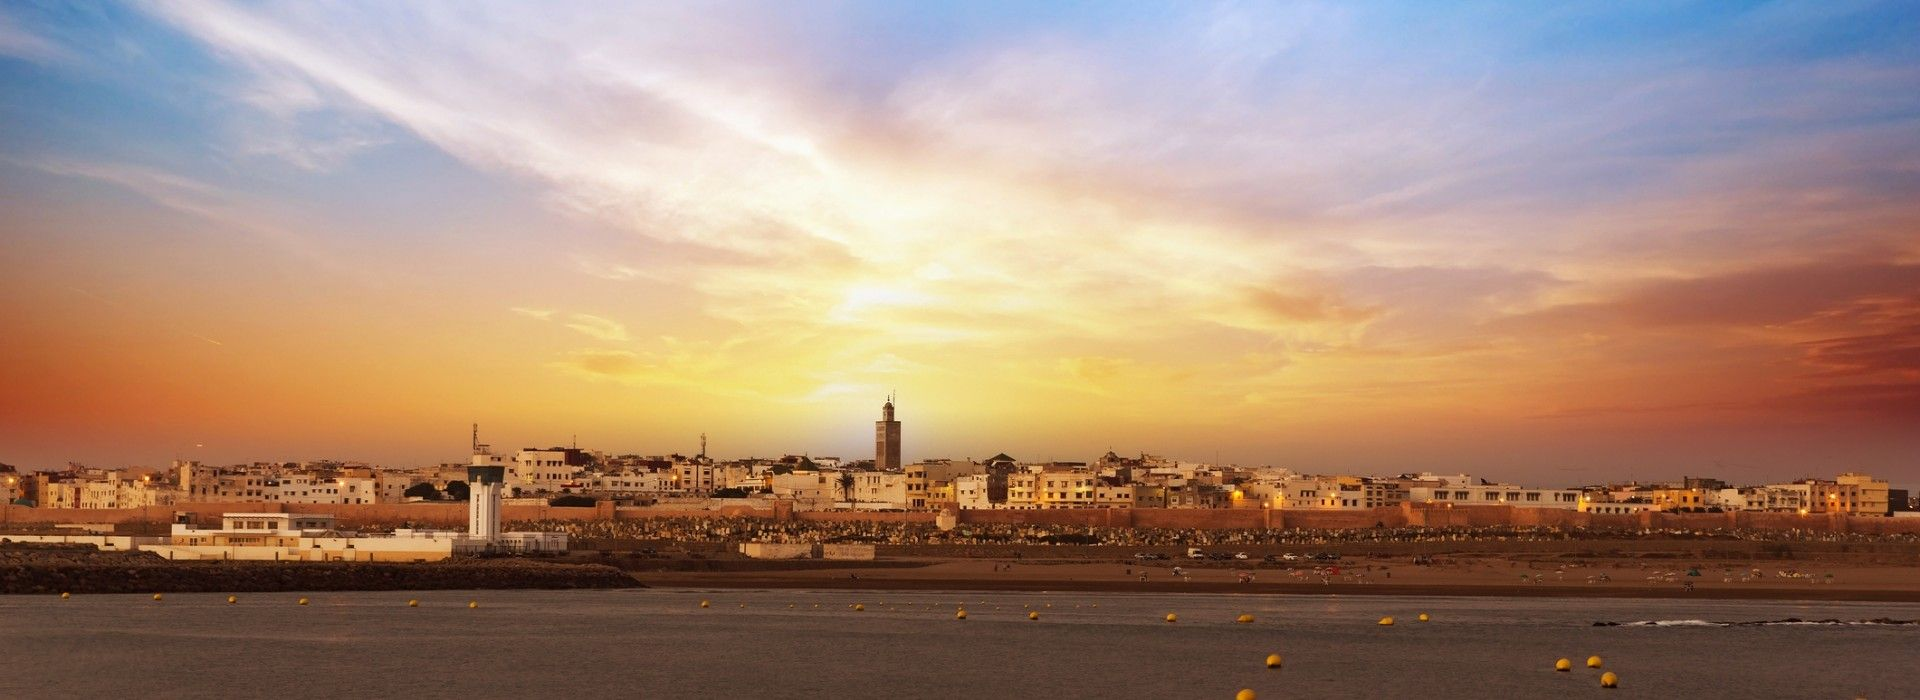 Cultural, religious and historic sites Tours in Marrakesh